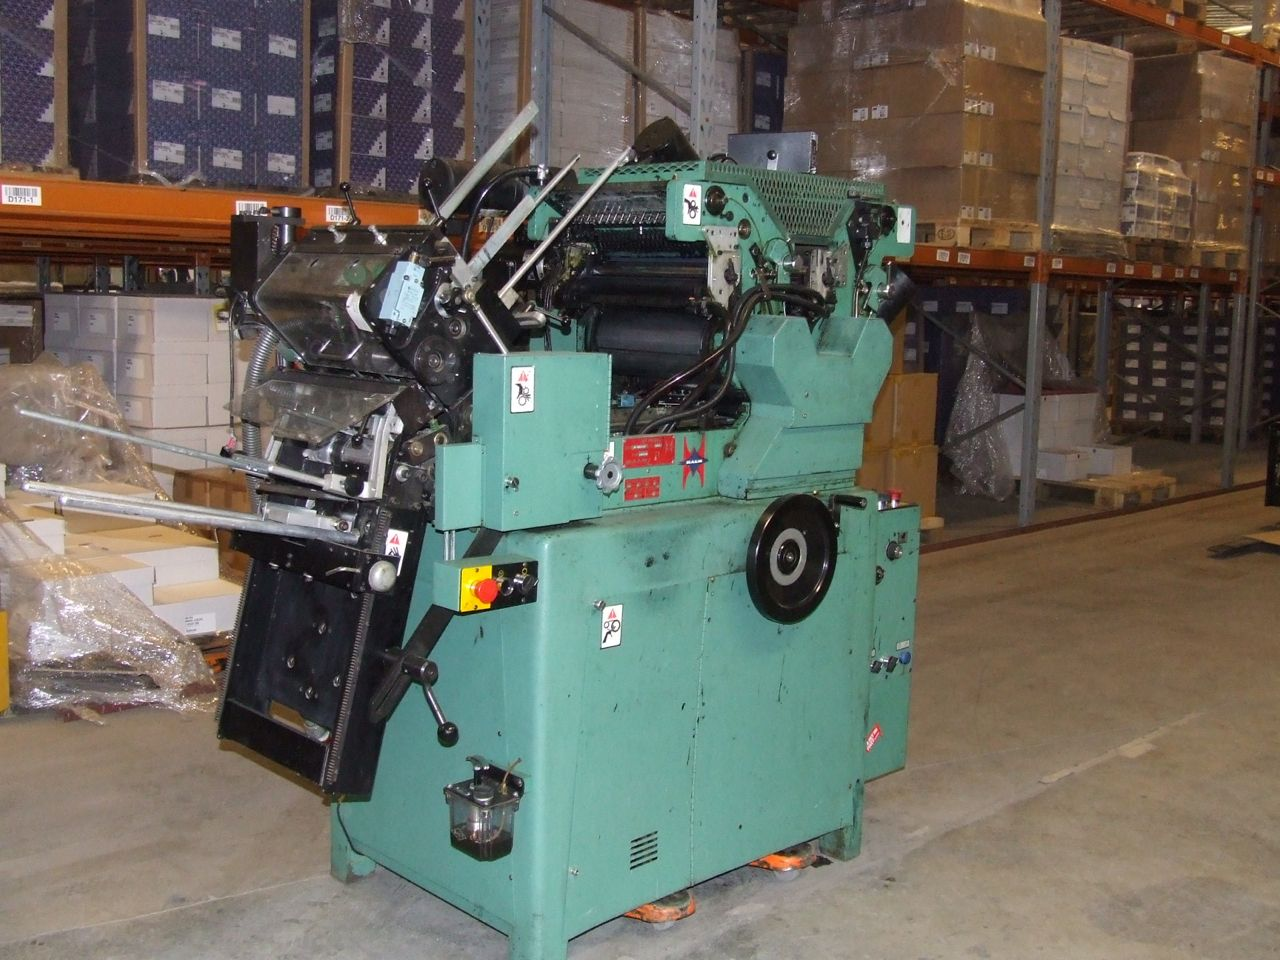 1998 Halm super jet press 2 color perfector AS IS machine sn 6023